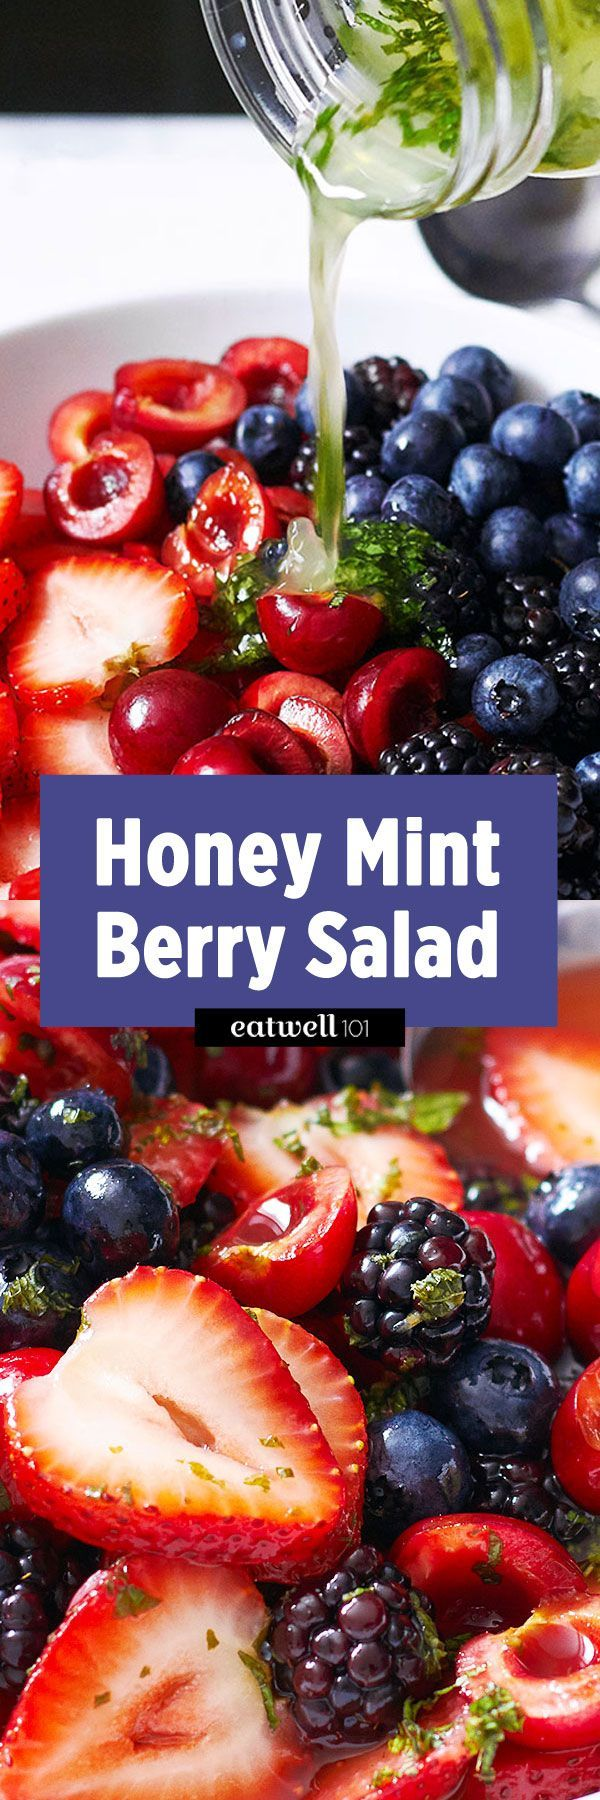 Berry Salad with Honey Lime and Mint Dressing